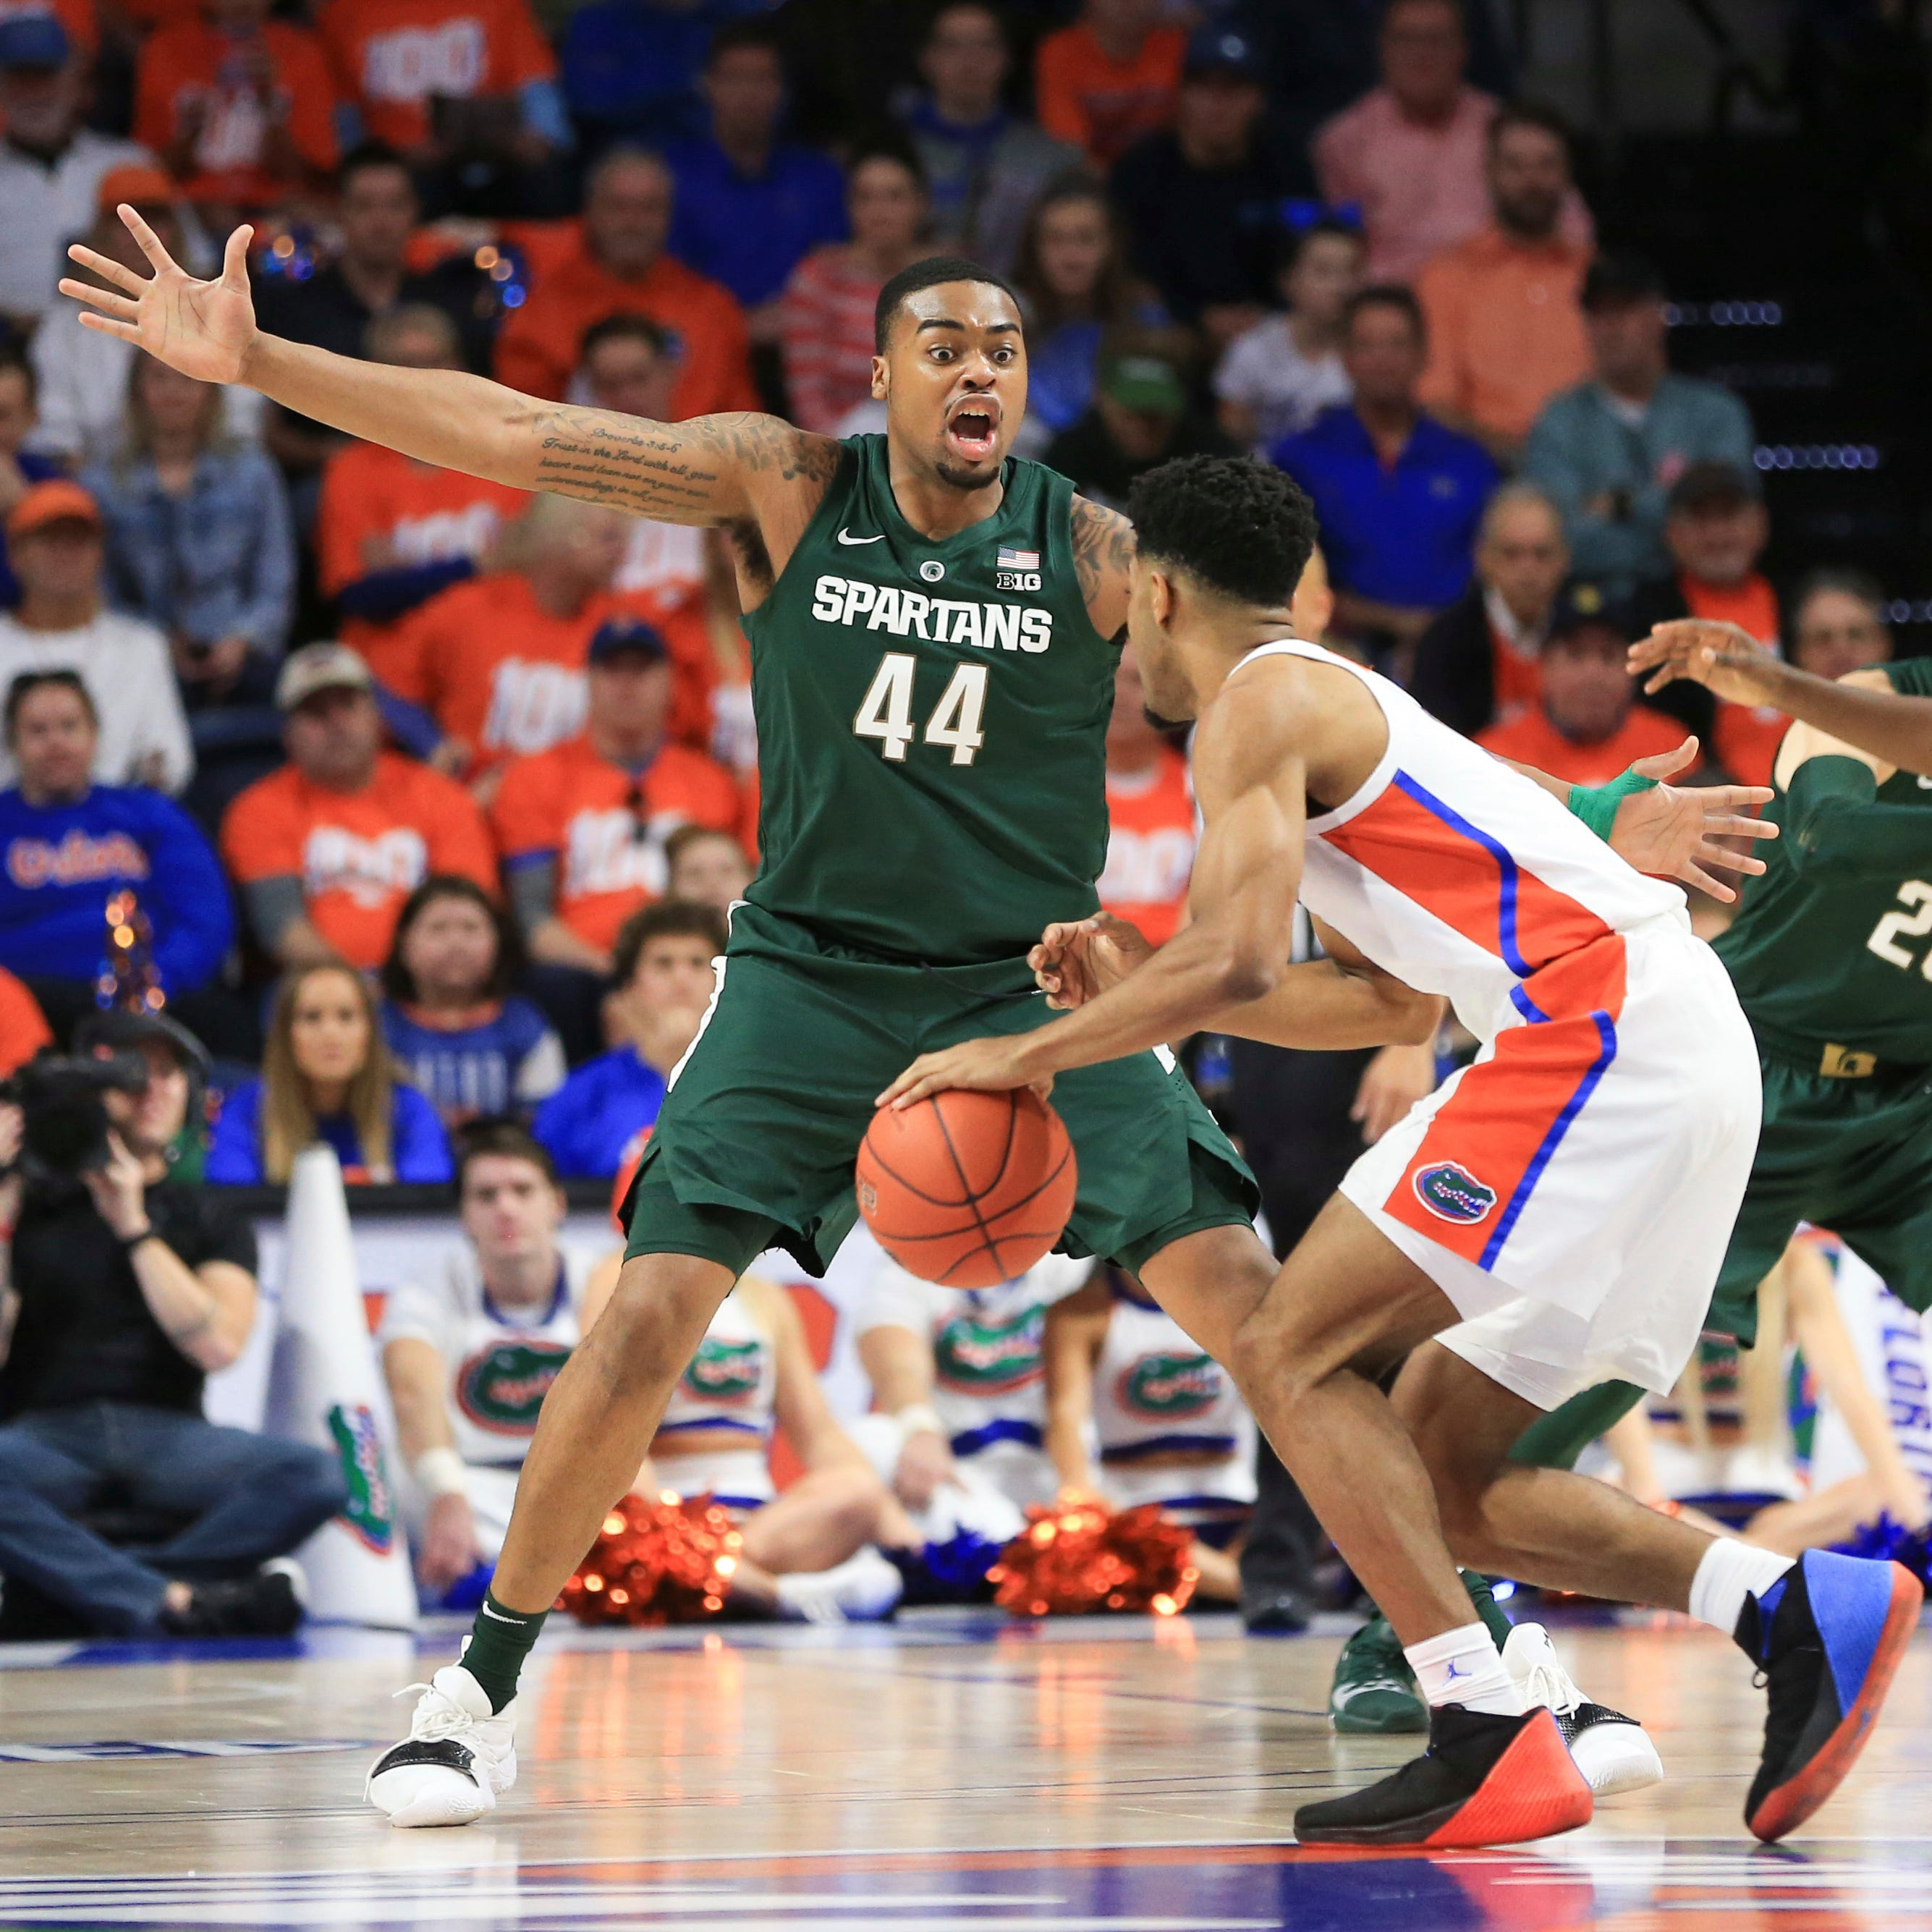 Couch: 3 quick takes on Michigan State basketball's win at Florida